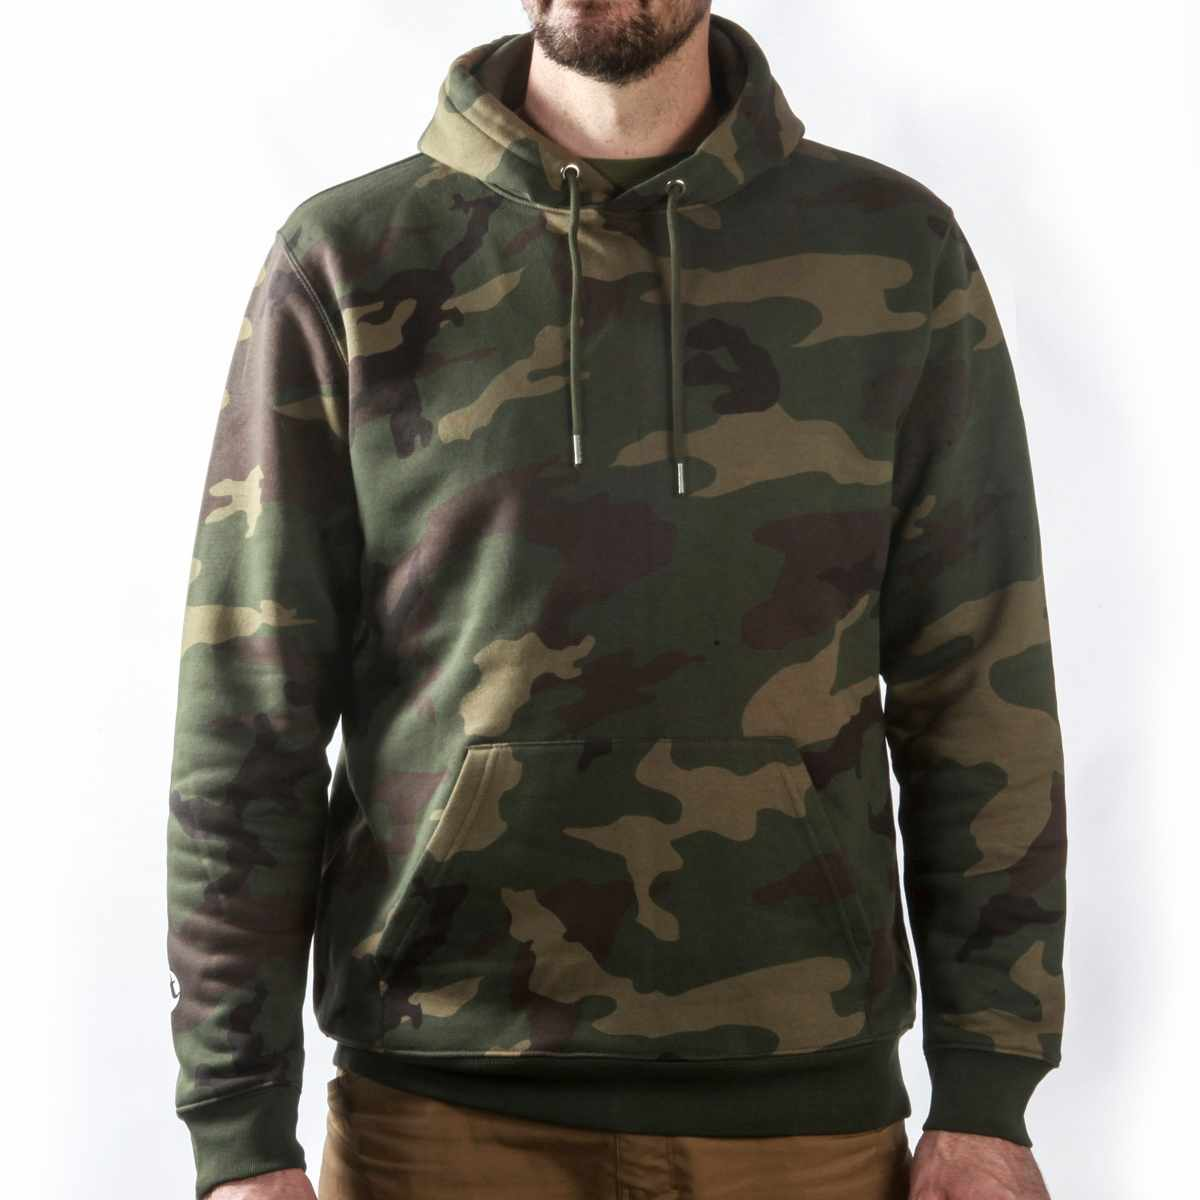 gifts for mountain bikers singletrack camo hoodie sweatshirt what to get a cyclist for Xmas